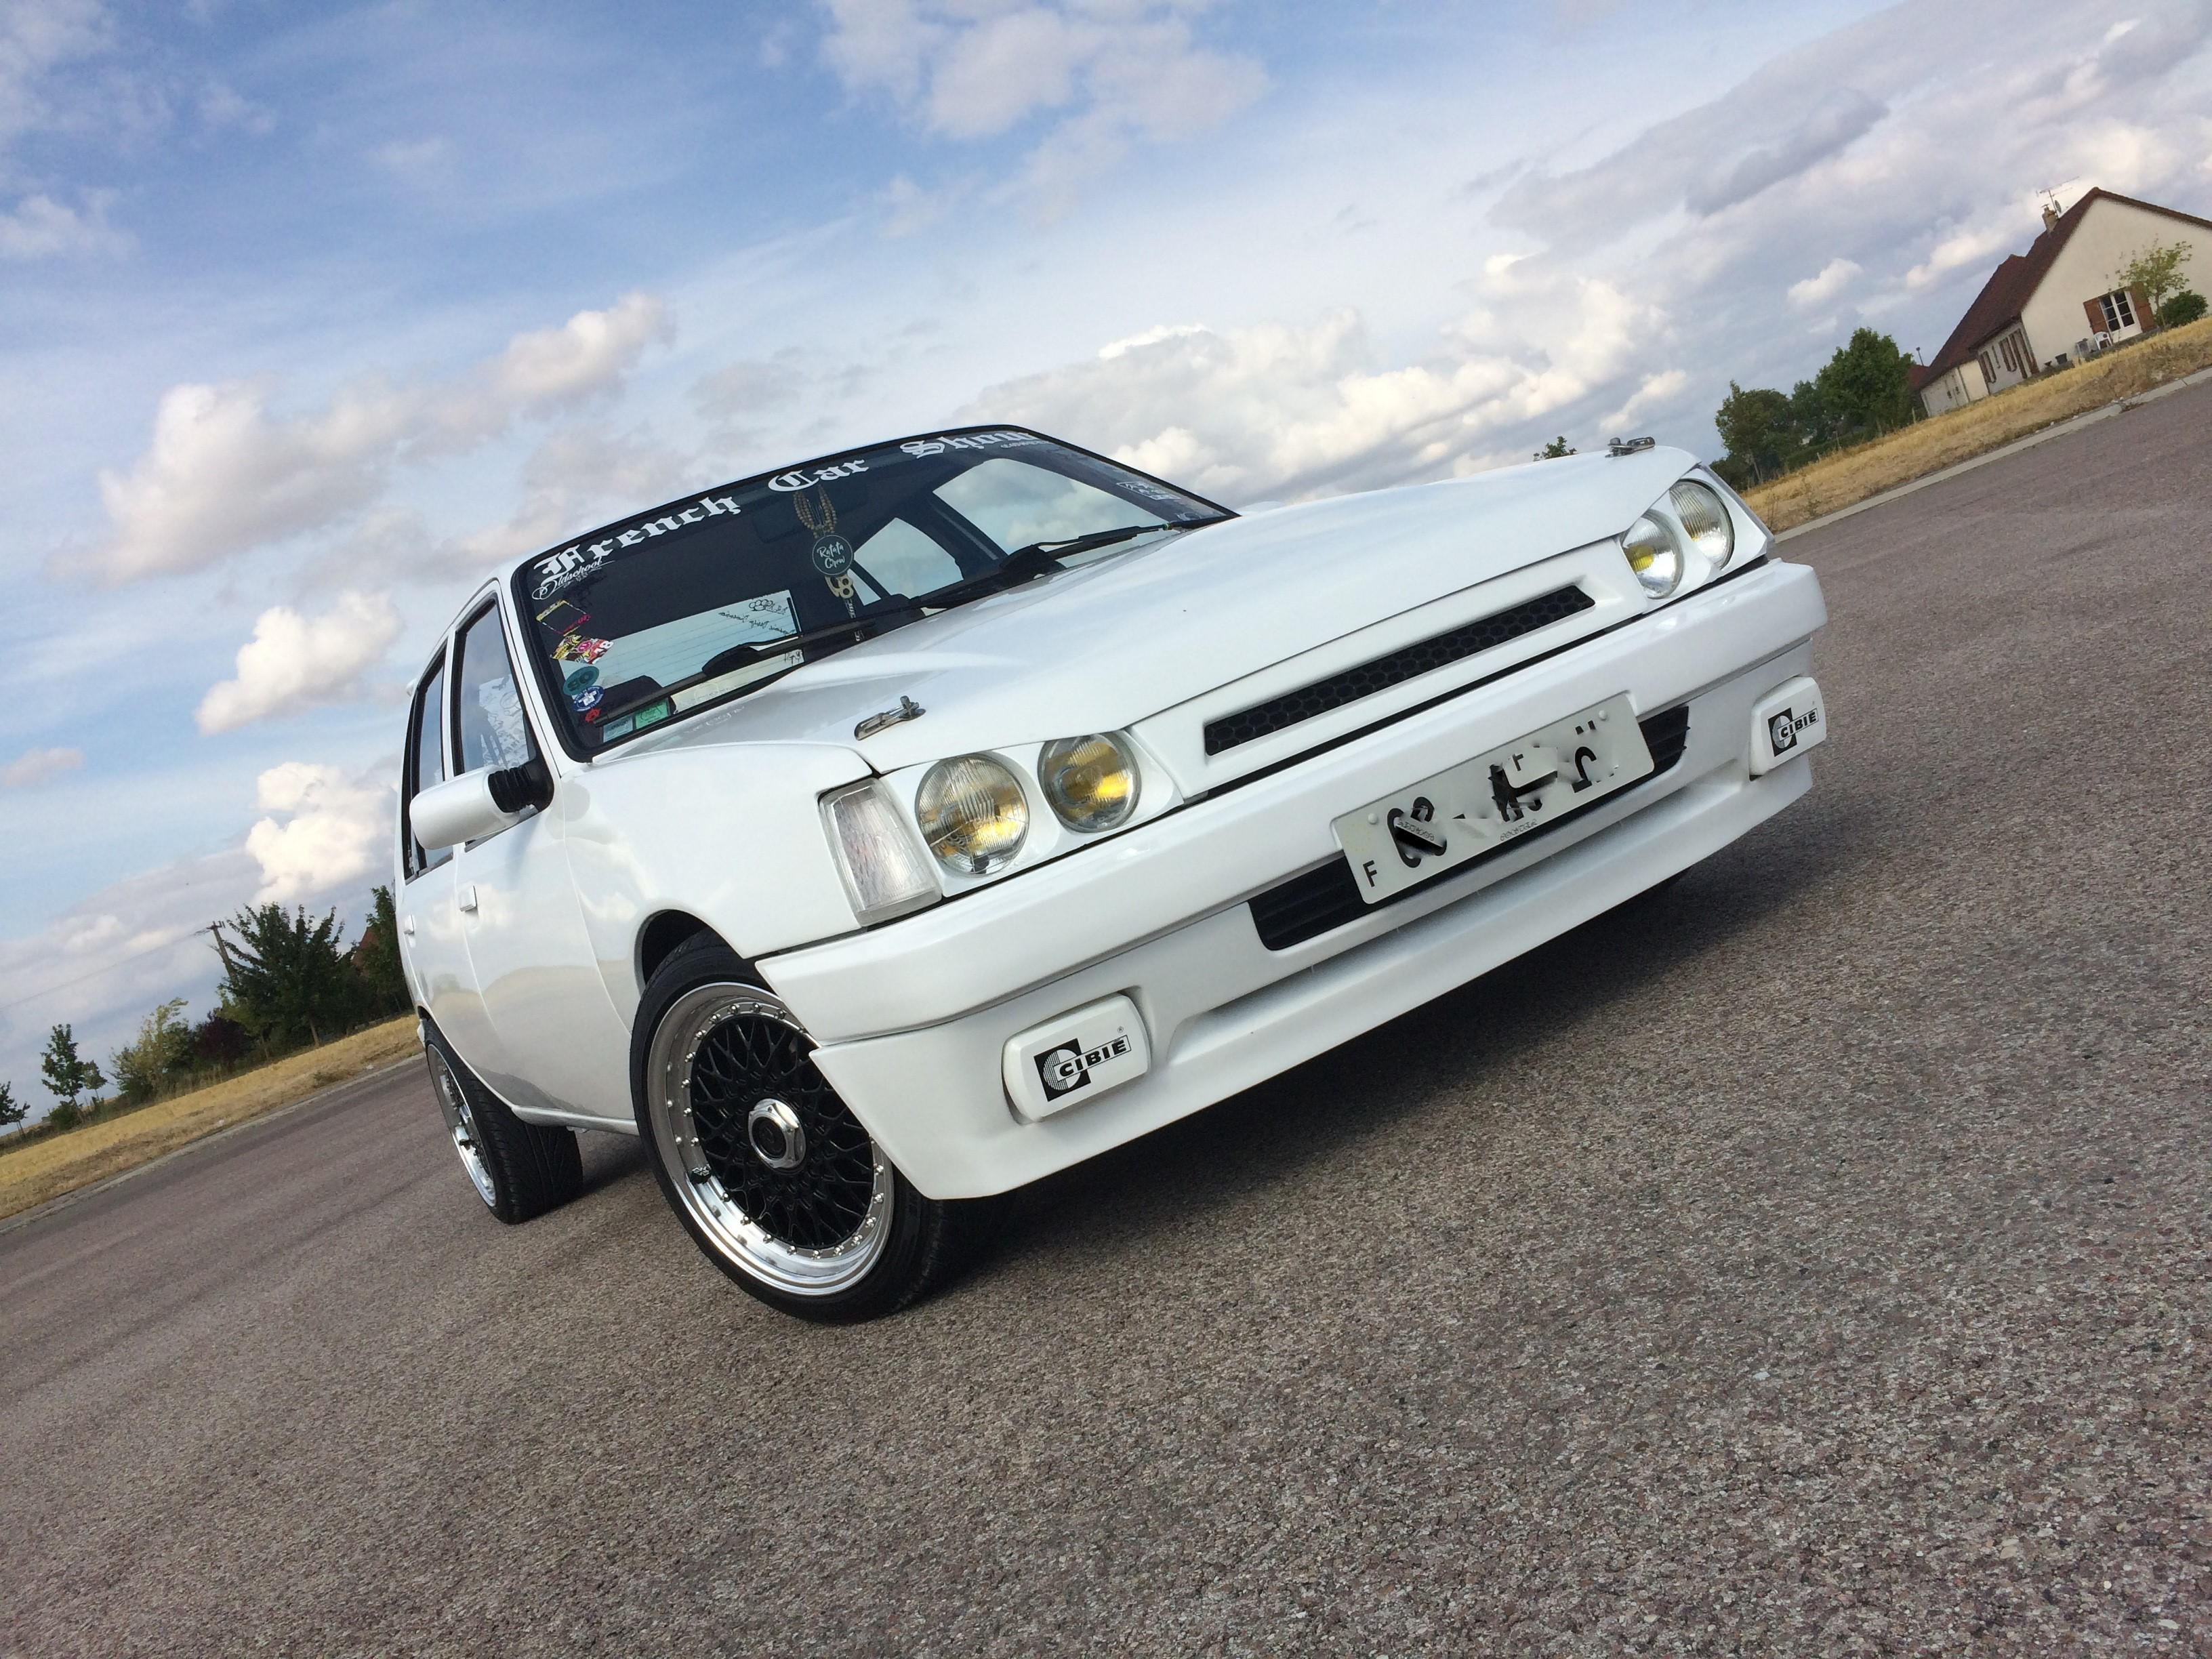 peugeot 205 tuning static car french car low style clean (11)